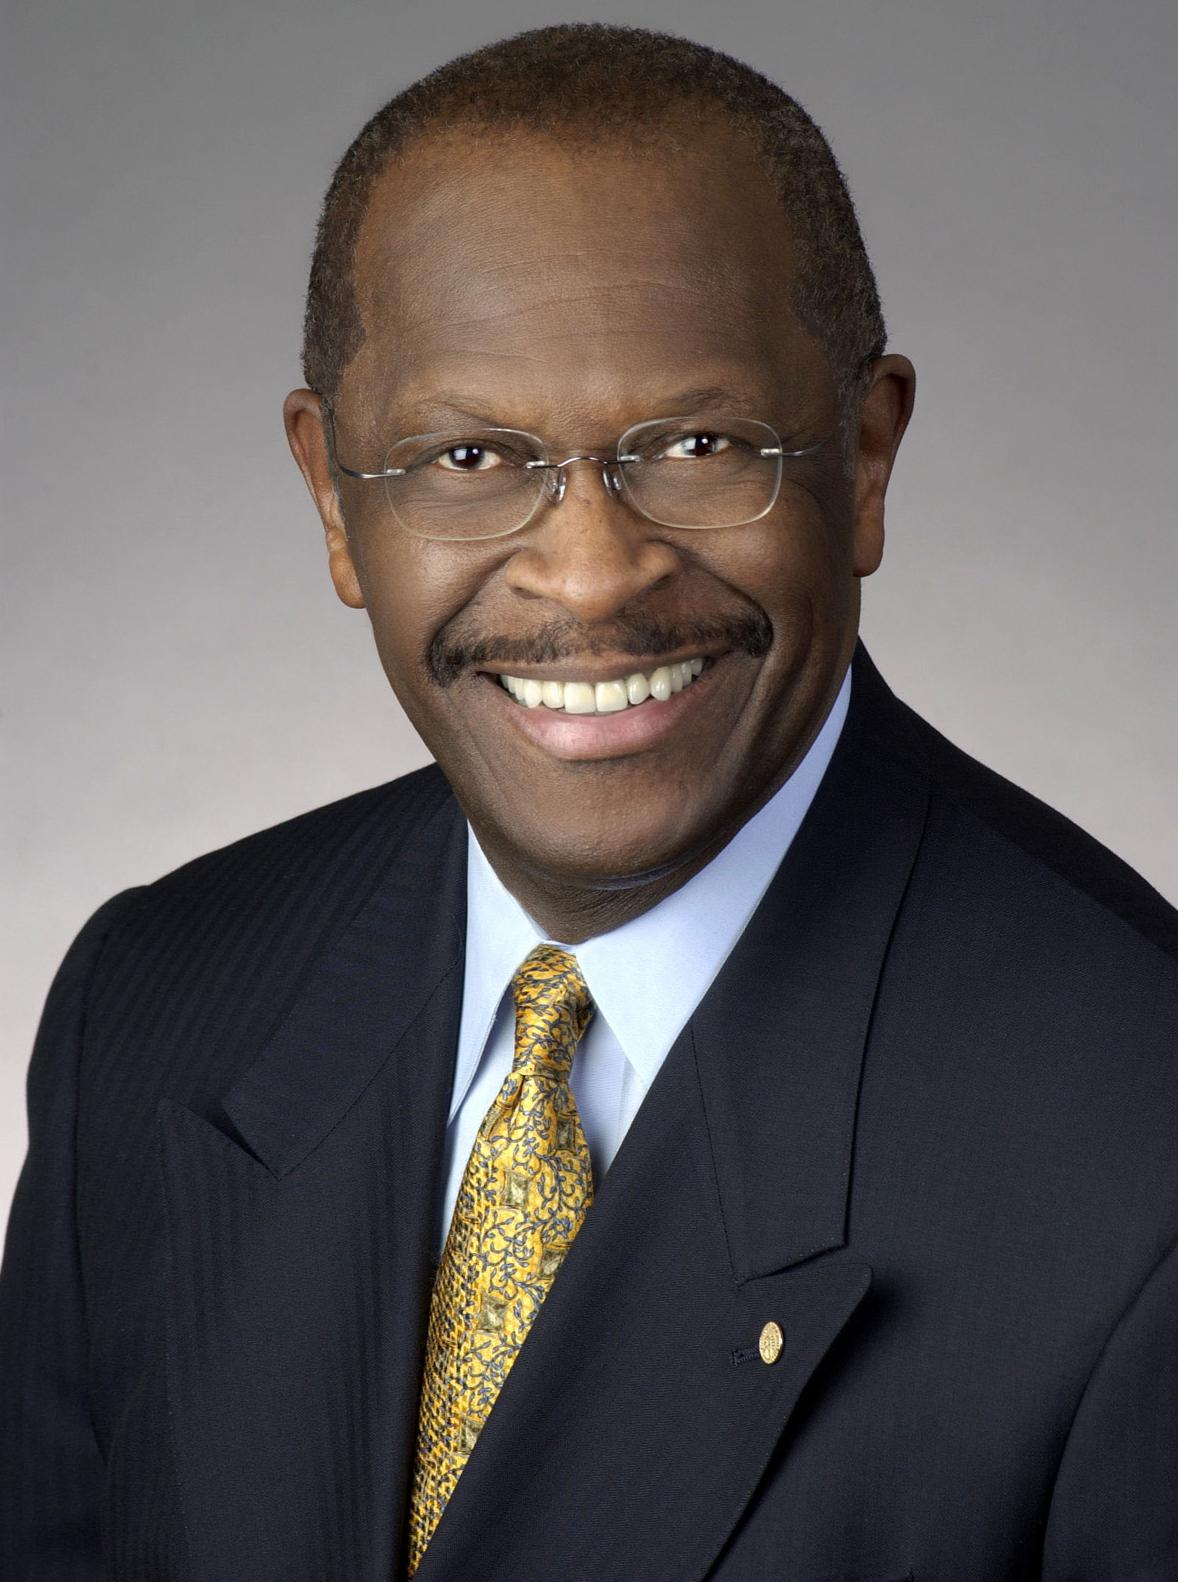 Jealous Of The Attention Herman Cain Is Getting During Campaigning